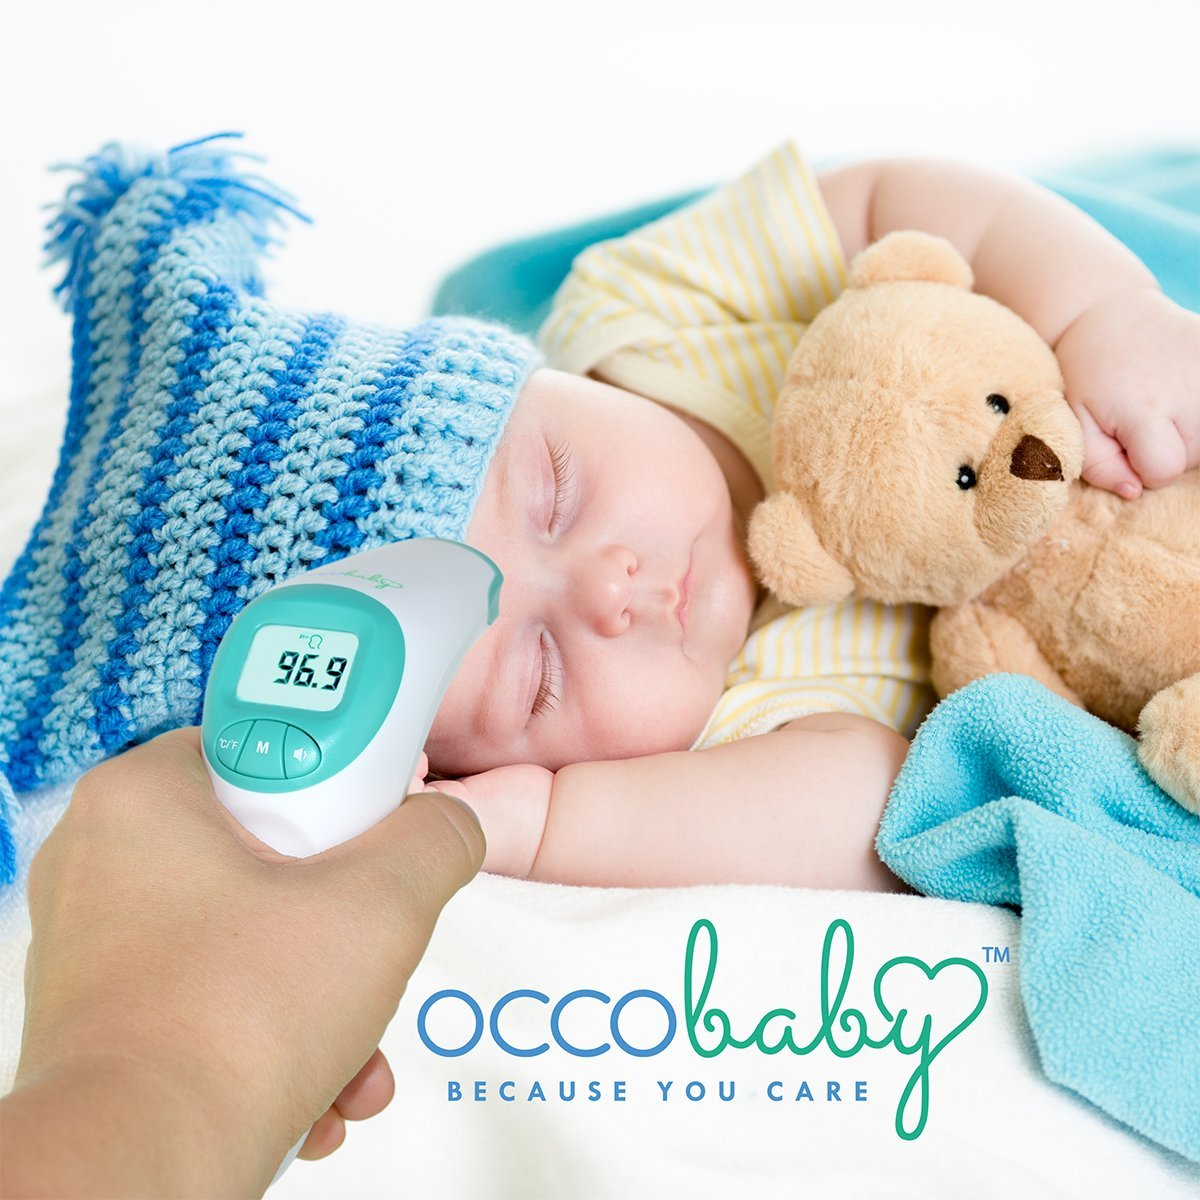 Amazon.com: OCCObaby Clinical Forehead Baby Thermometer - 2018 Edition with Flexible Tip Waterproof Digital Thermometer for Infants & Toddlers   Instant ...